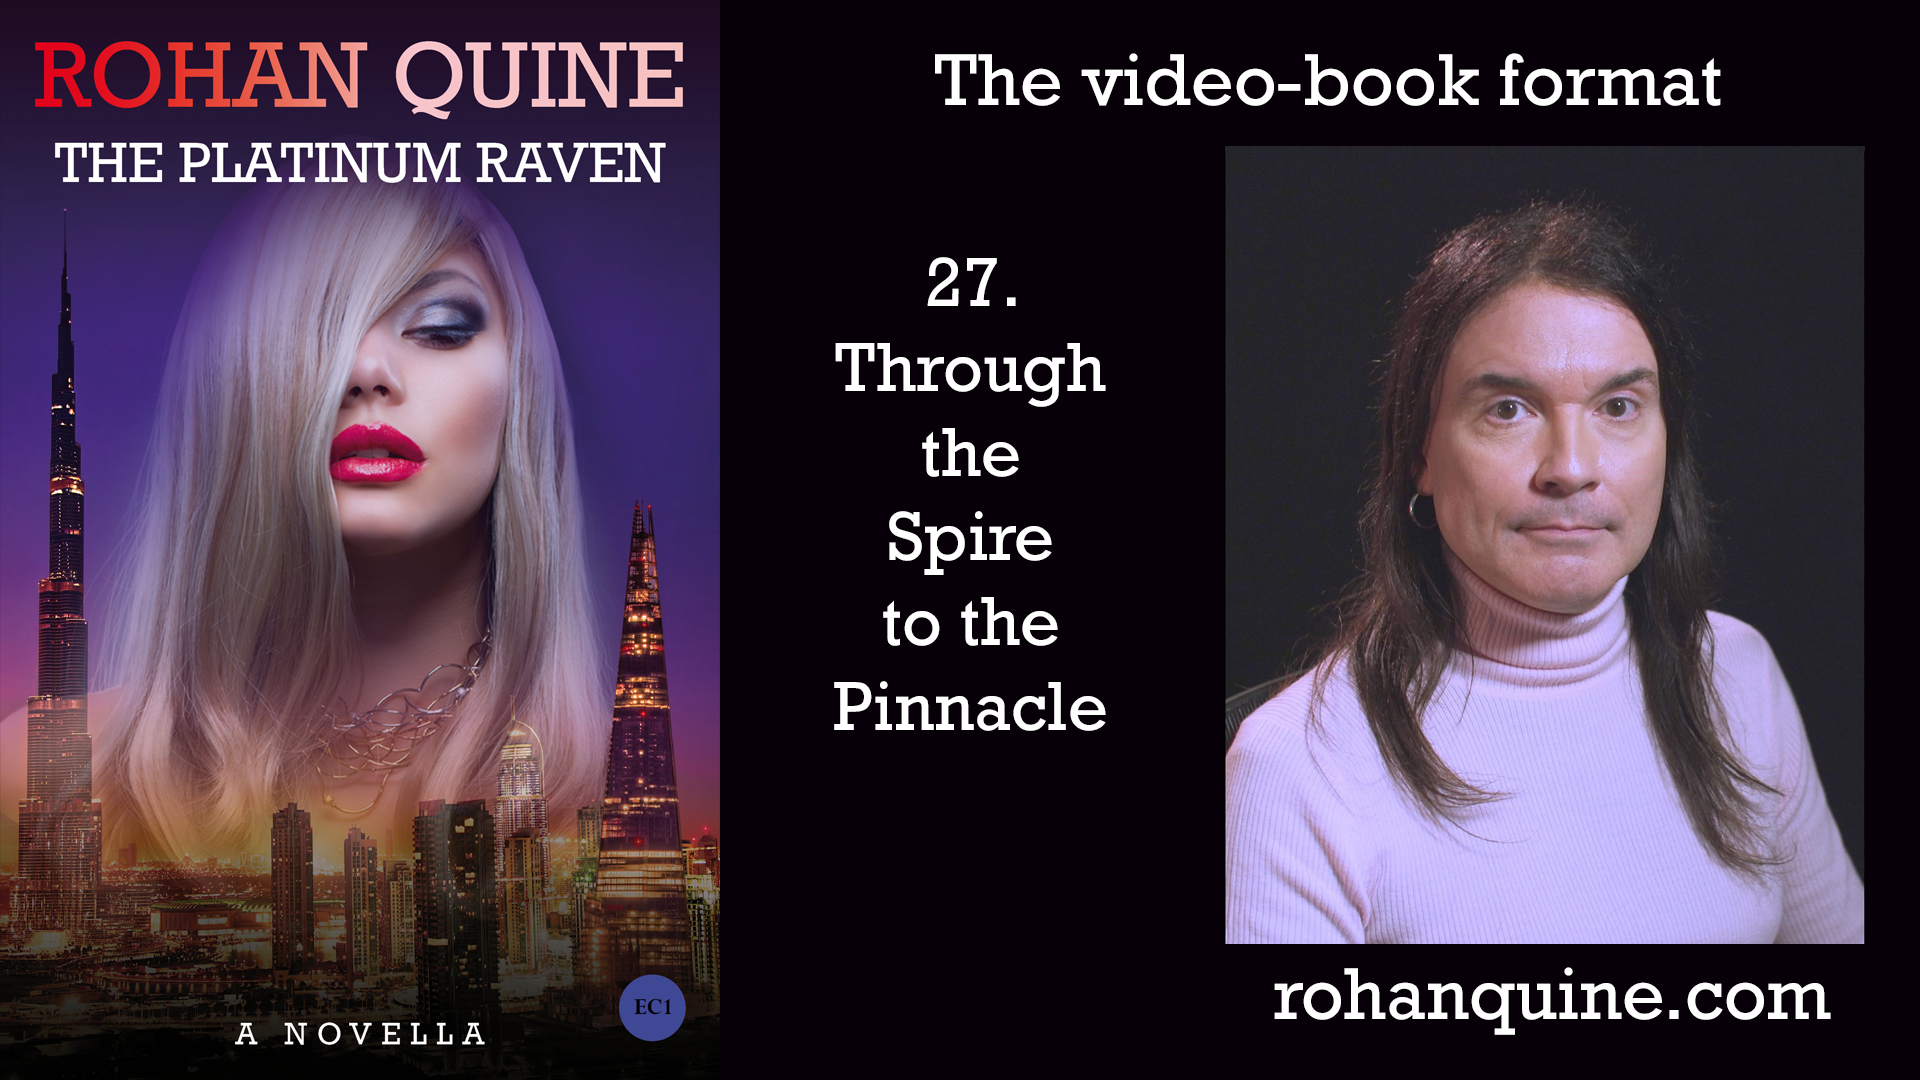 THE PLATINUM RAVEN by Rohan Quine - video-book format - chapter 27